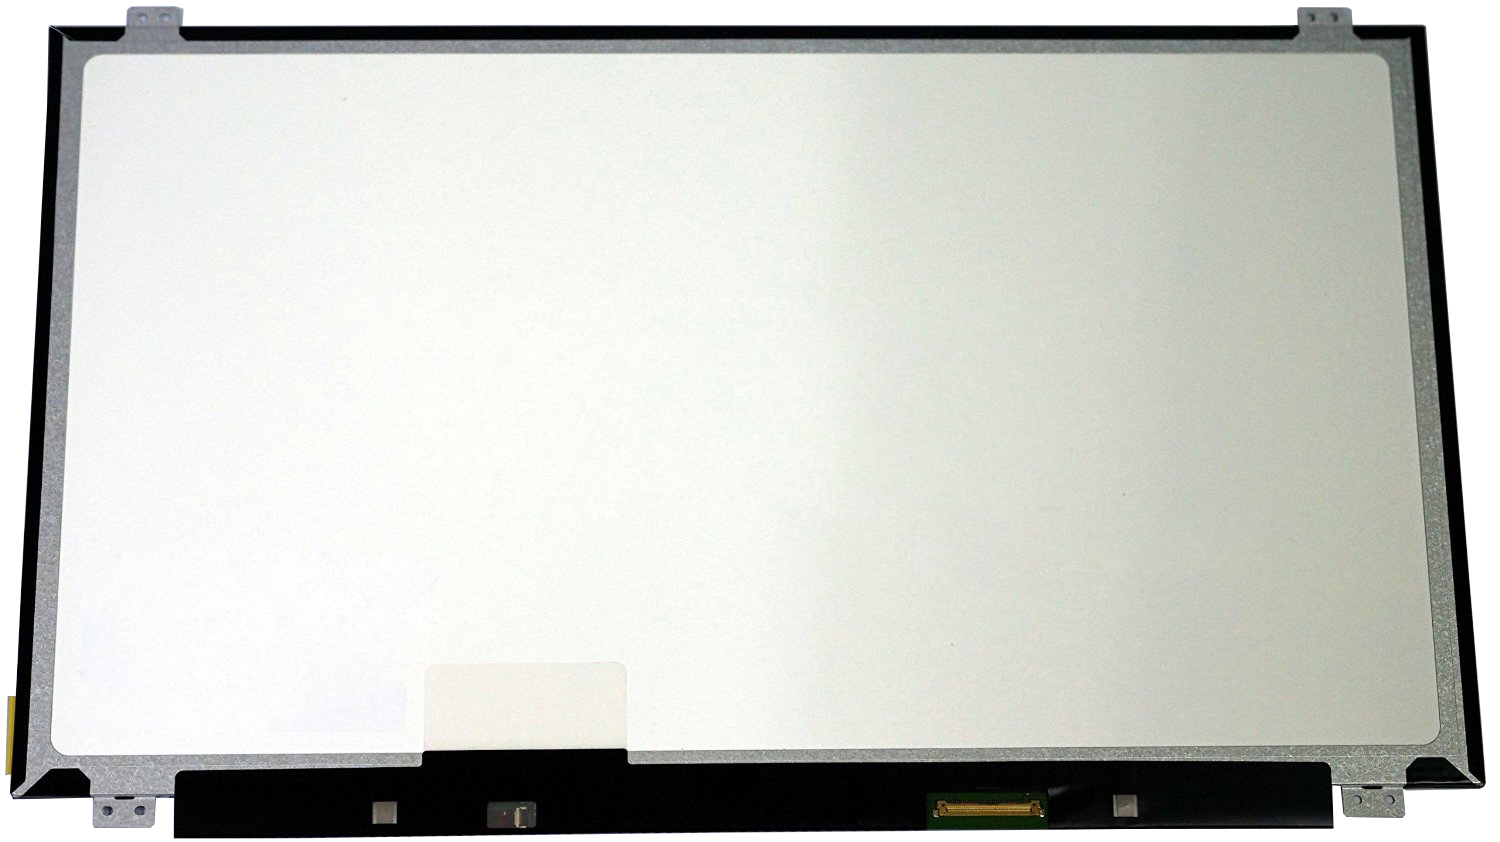 QuYing Laptop LCD Screen for Acer ASPIRE E5-471P SERIES quying laptop lcd screen for acer extensa 5235 as5551 series 15 6 inch 1366x768 40pin tk